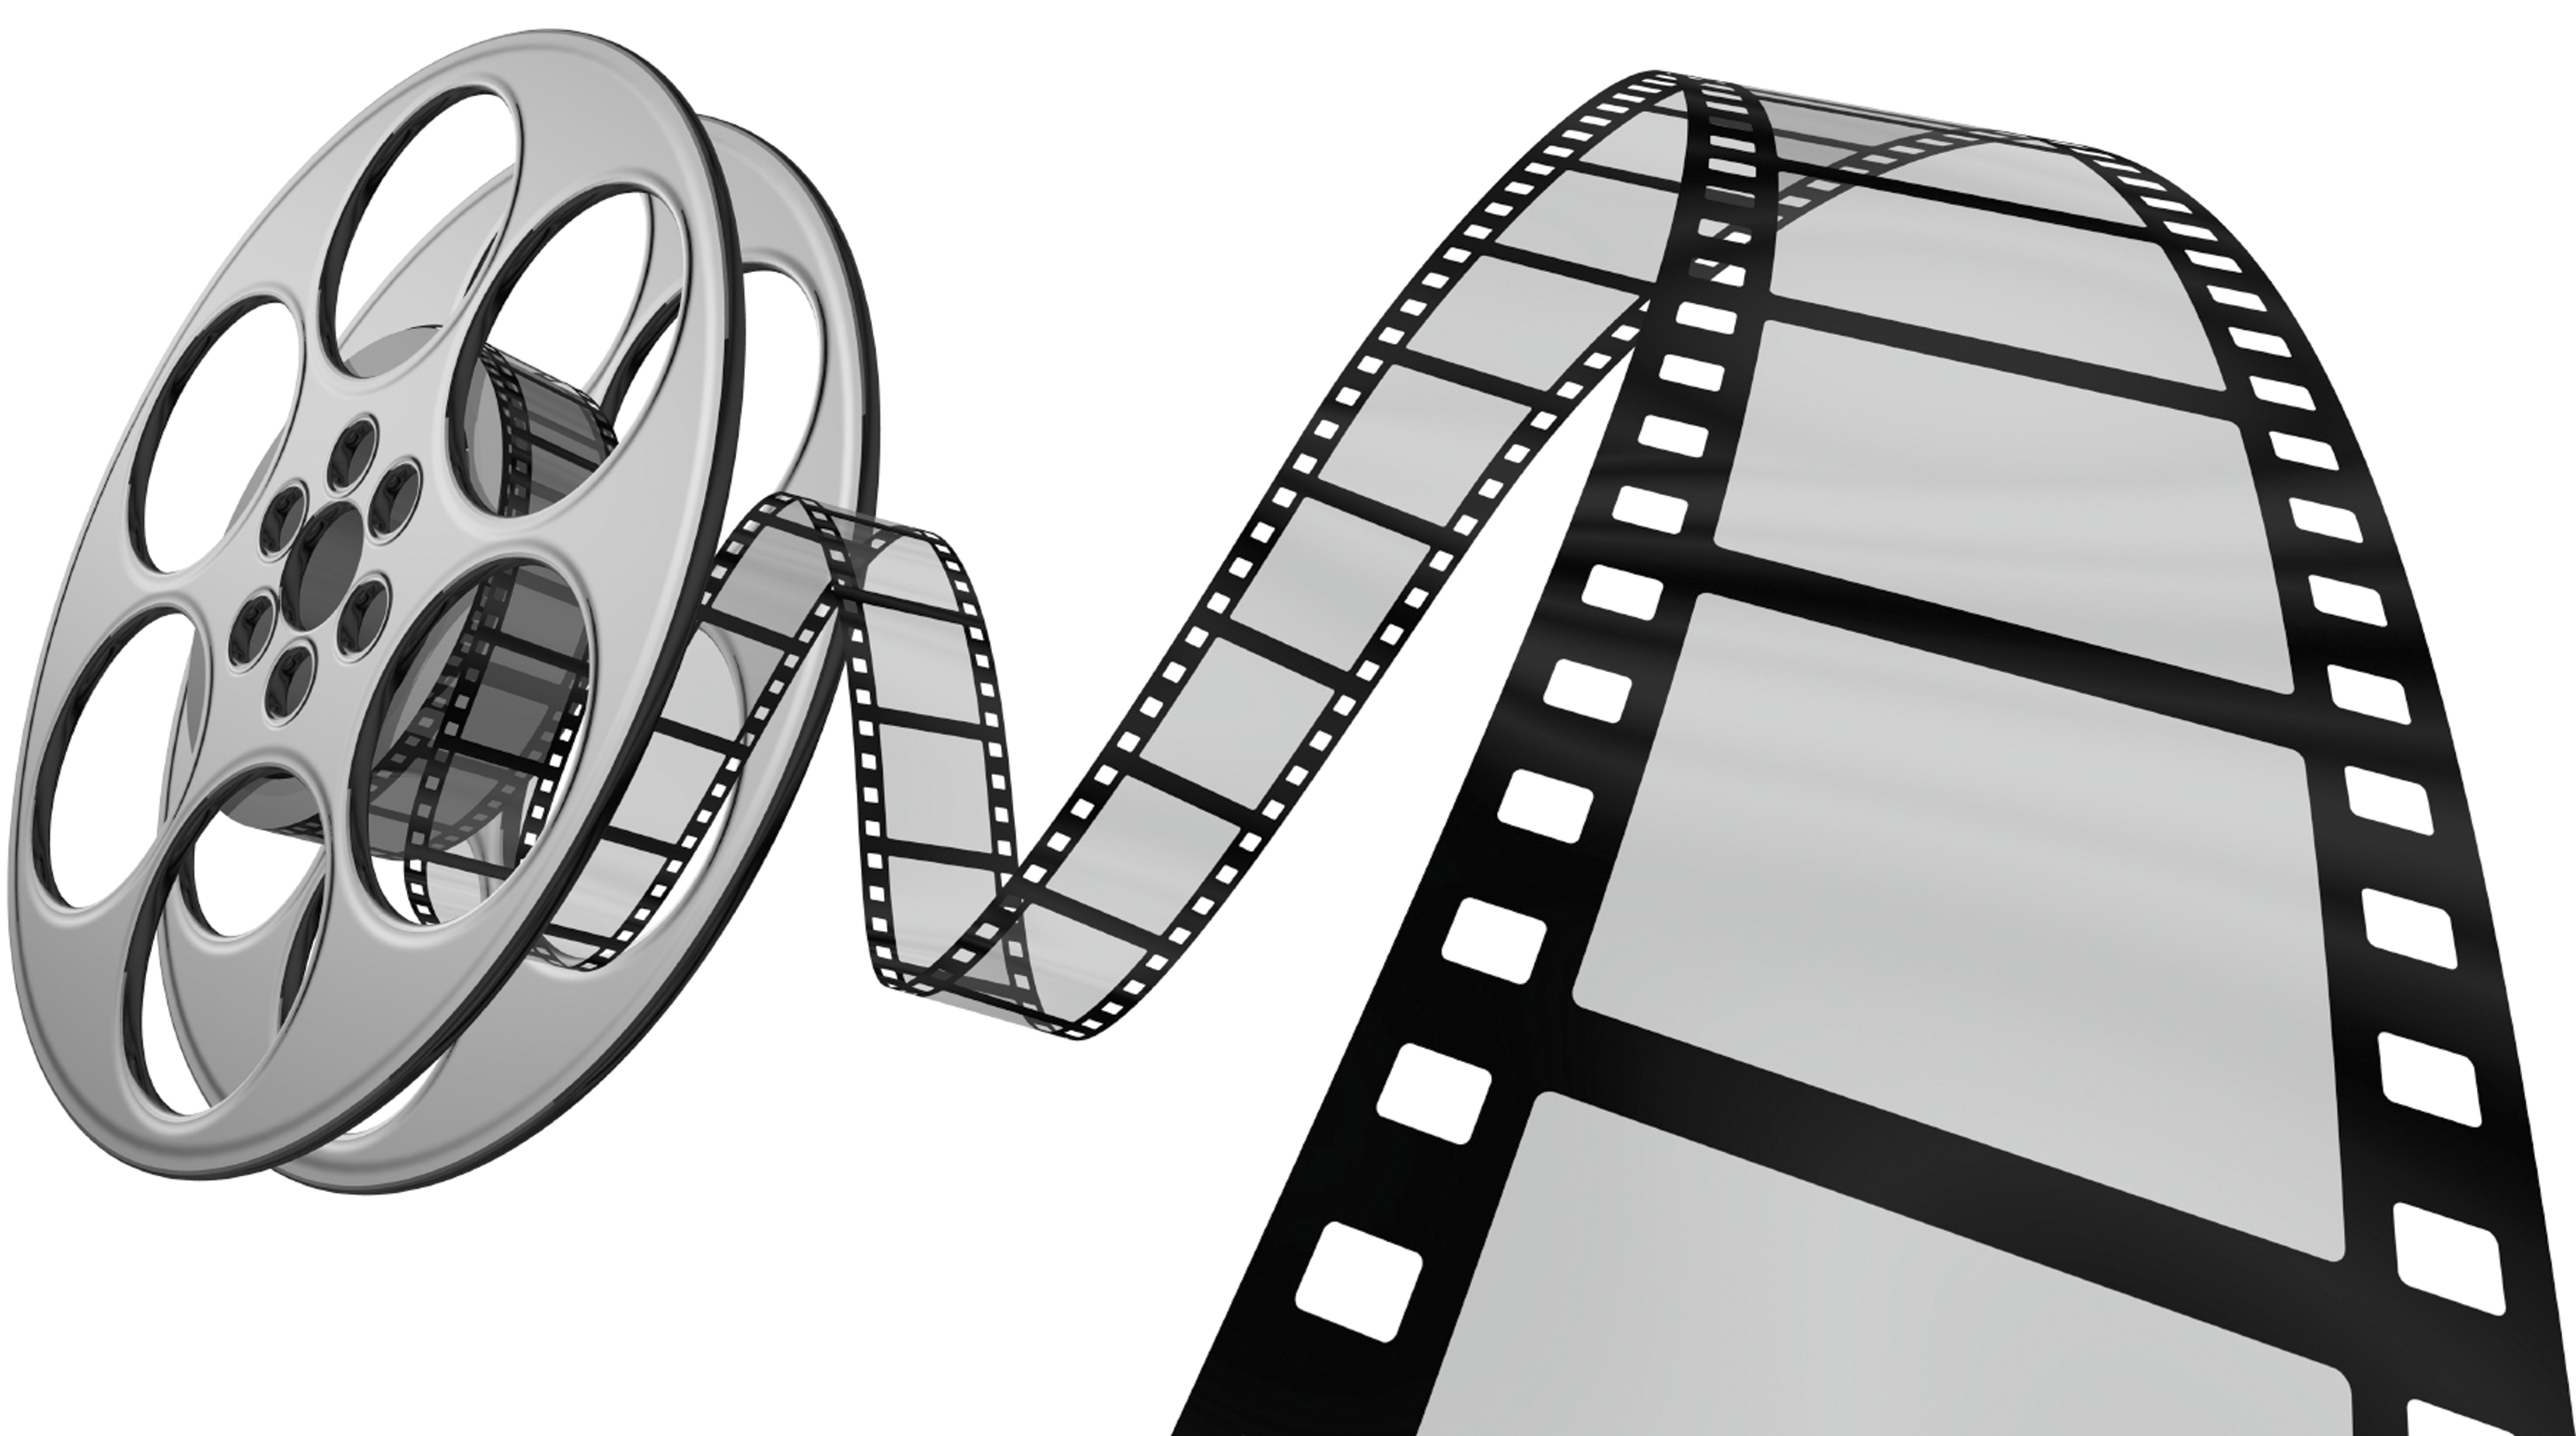 Movie Reel Images - ClipArt Best